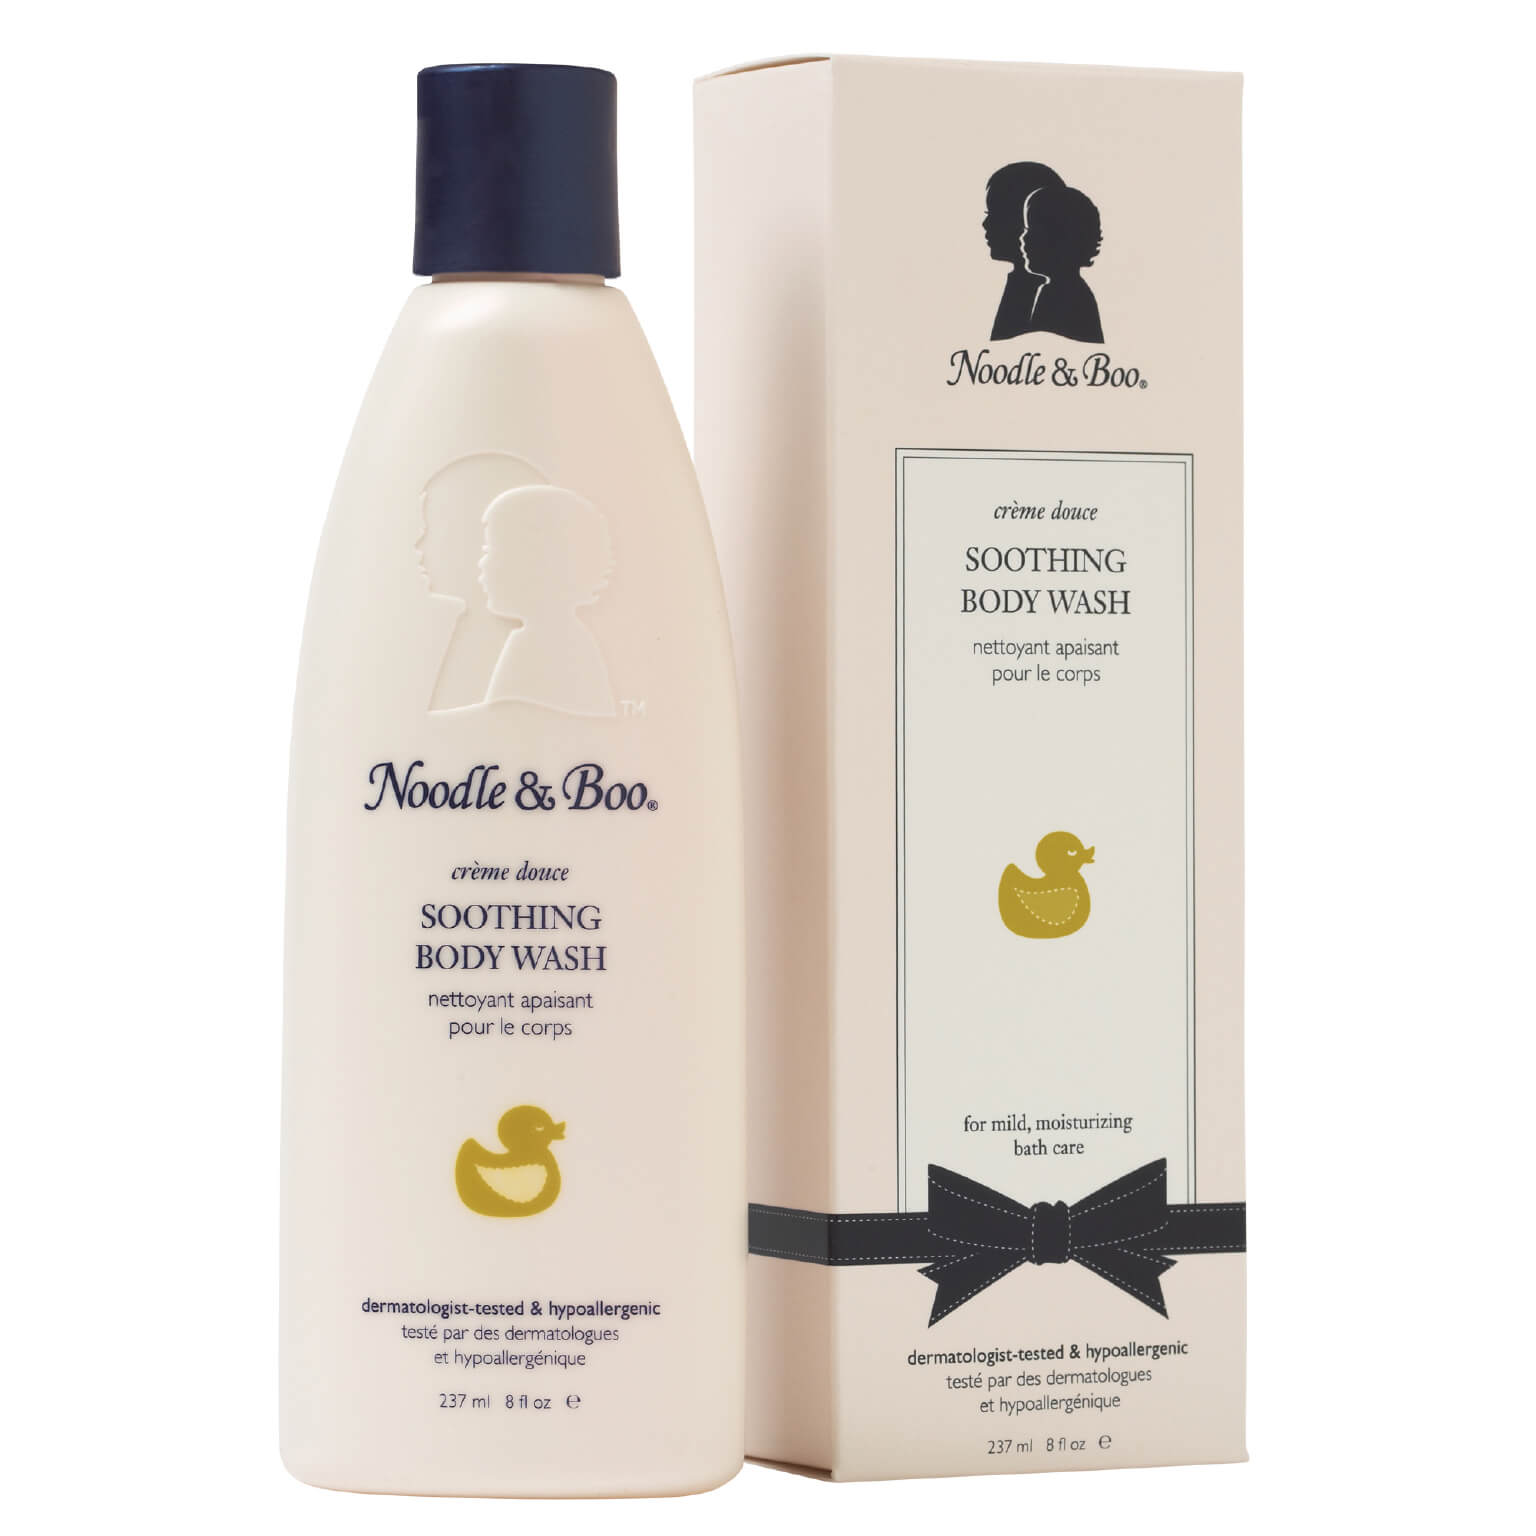 https://www.noodleandbooturkiye.com/media/uploads/files/Soothing Body Wash1574956083405GjUMH.jpeg